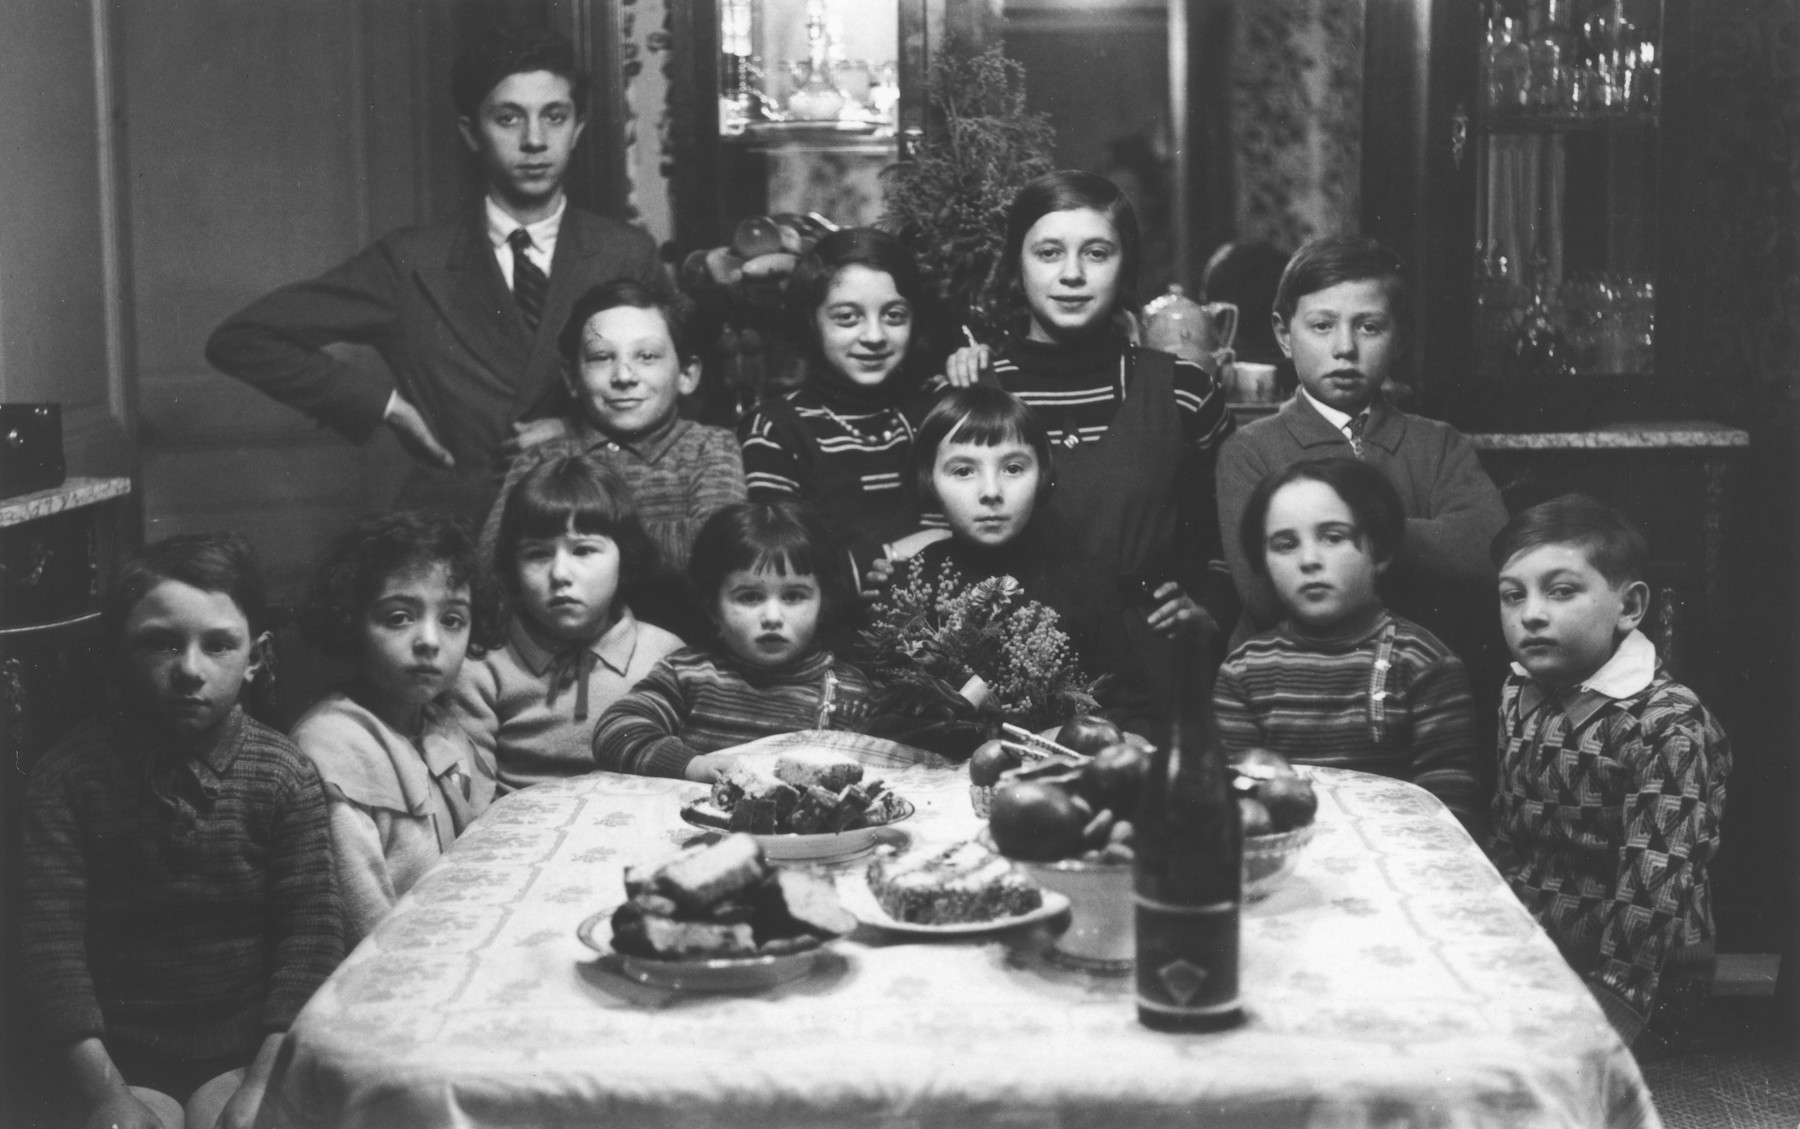 Group portrait of Jewish children gathered around a table at a birthday party in Paris.  Among those pictured are Aba Sztern (second row far right) and his sister Catherine (front row, third from the left), .